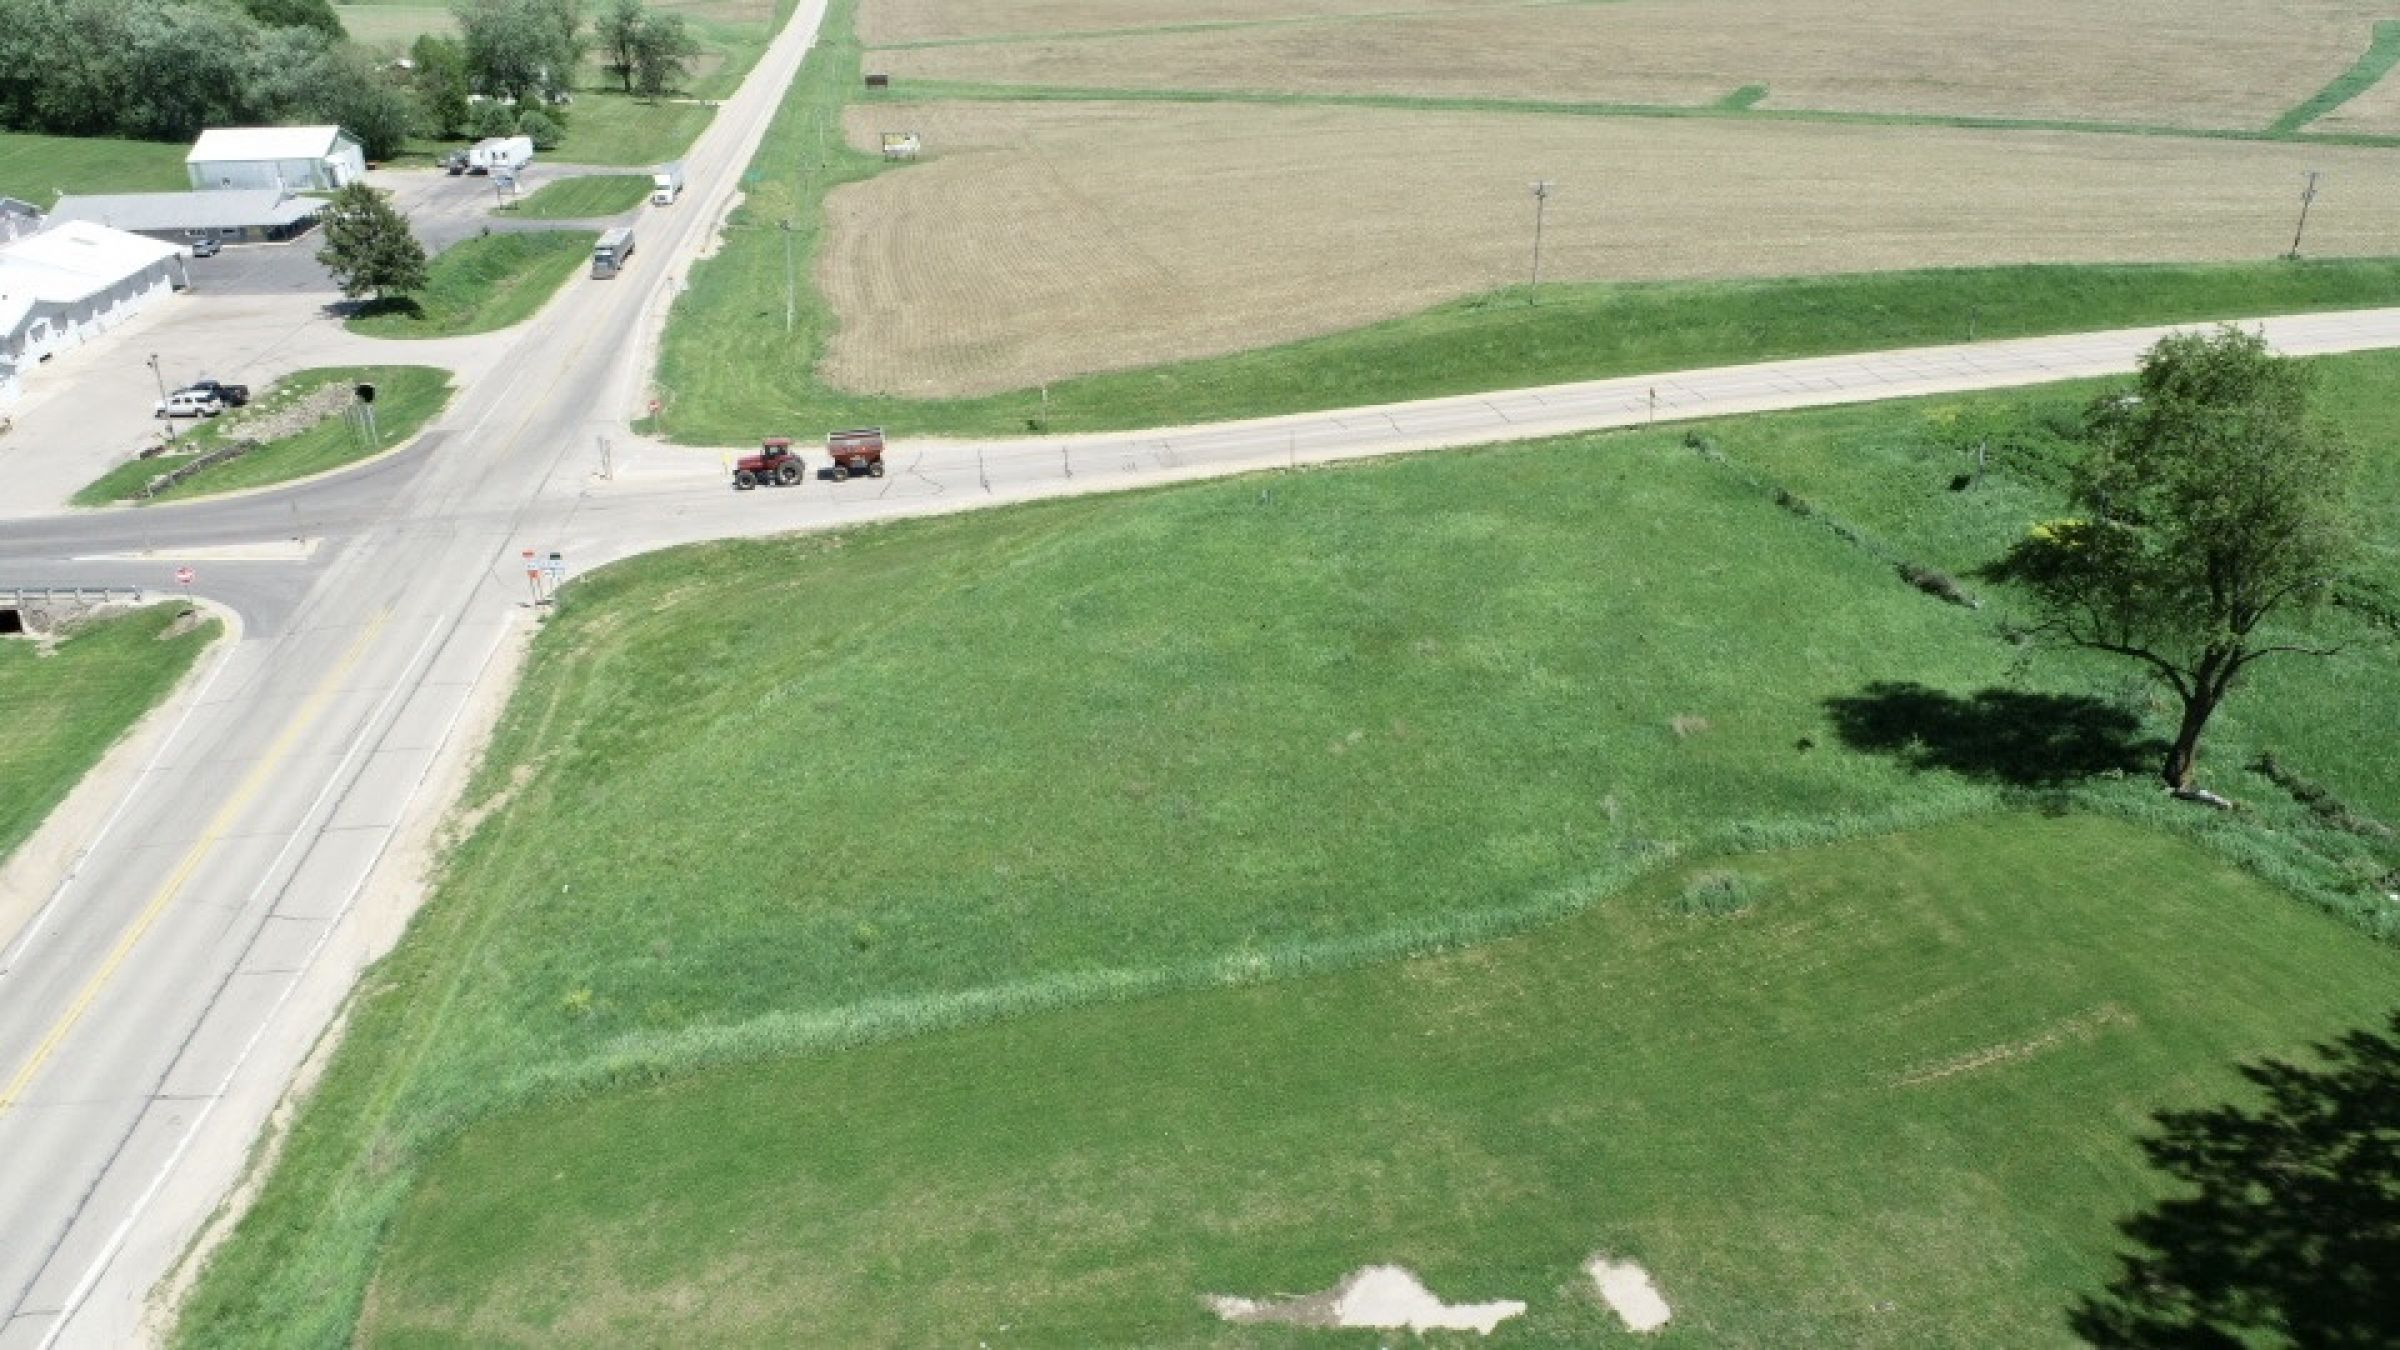 land-commercial-lafayette-county-wisconsin-1-acres-listing-number-15560-12-2021-05-28-185526.jpg